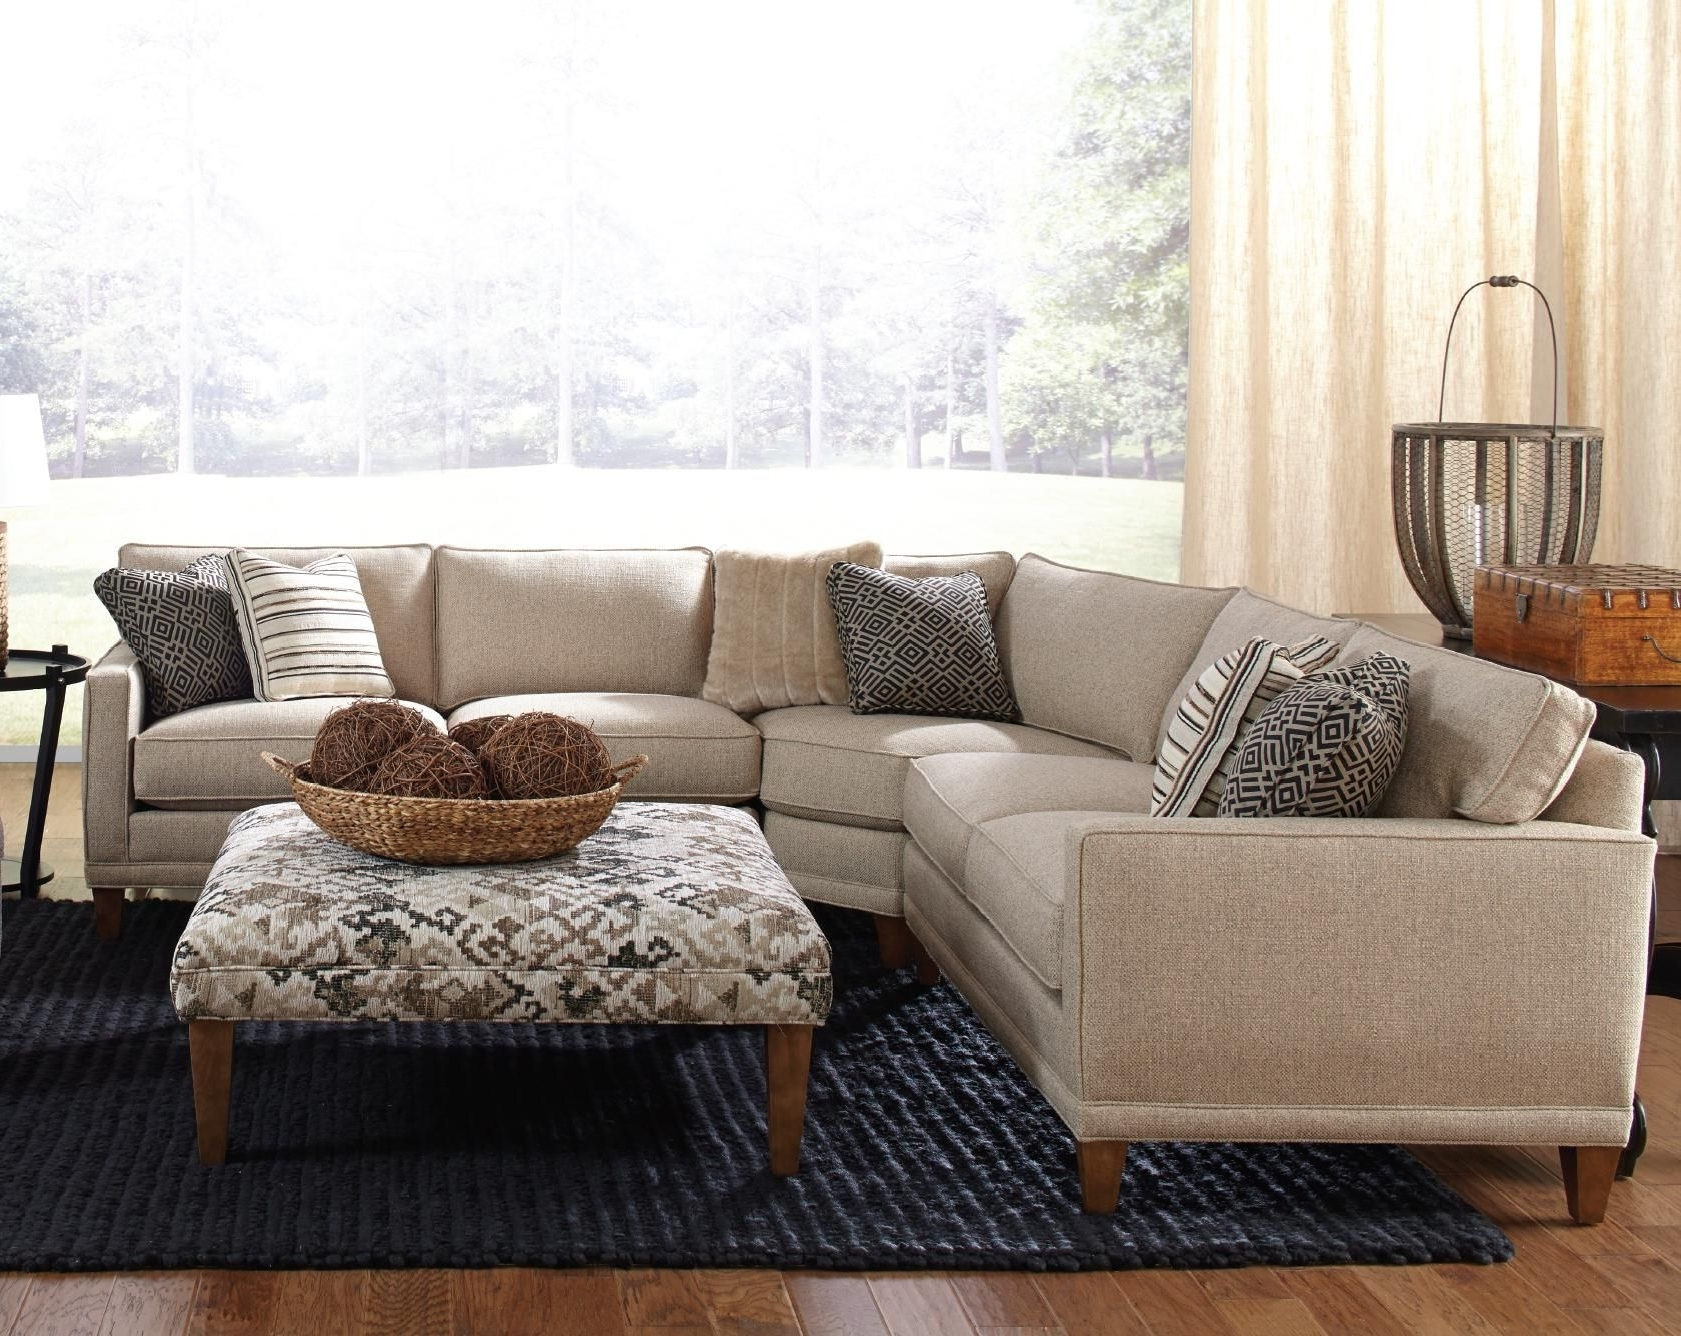 Rowe Townsend Contemporary 3 Piece Sectional Sofa – Sprintz Within Newest Little Rock Ar Sectional Sofas (View 17 of 20)